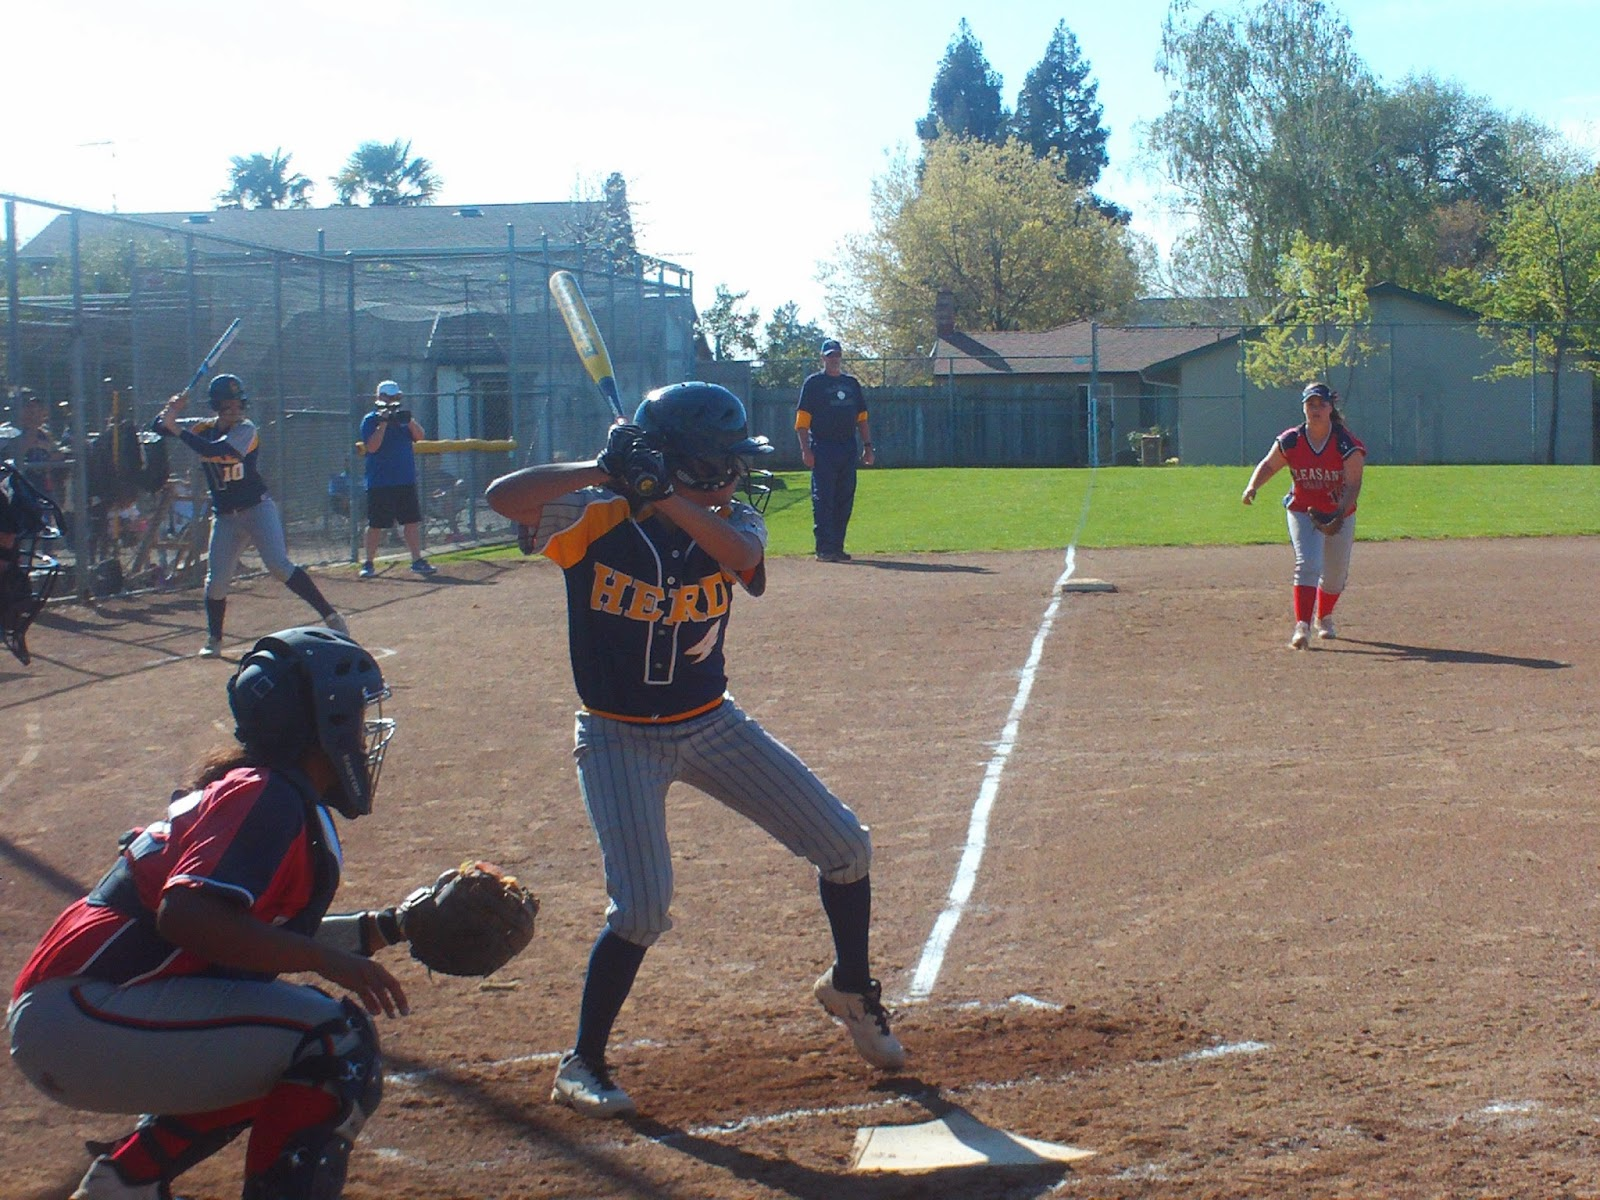 6-run Inning Gives EG Win Over PG; CRC Beats Modesto